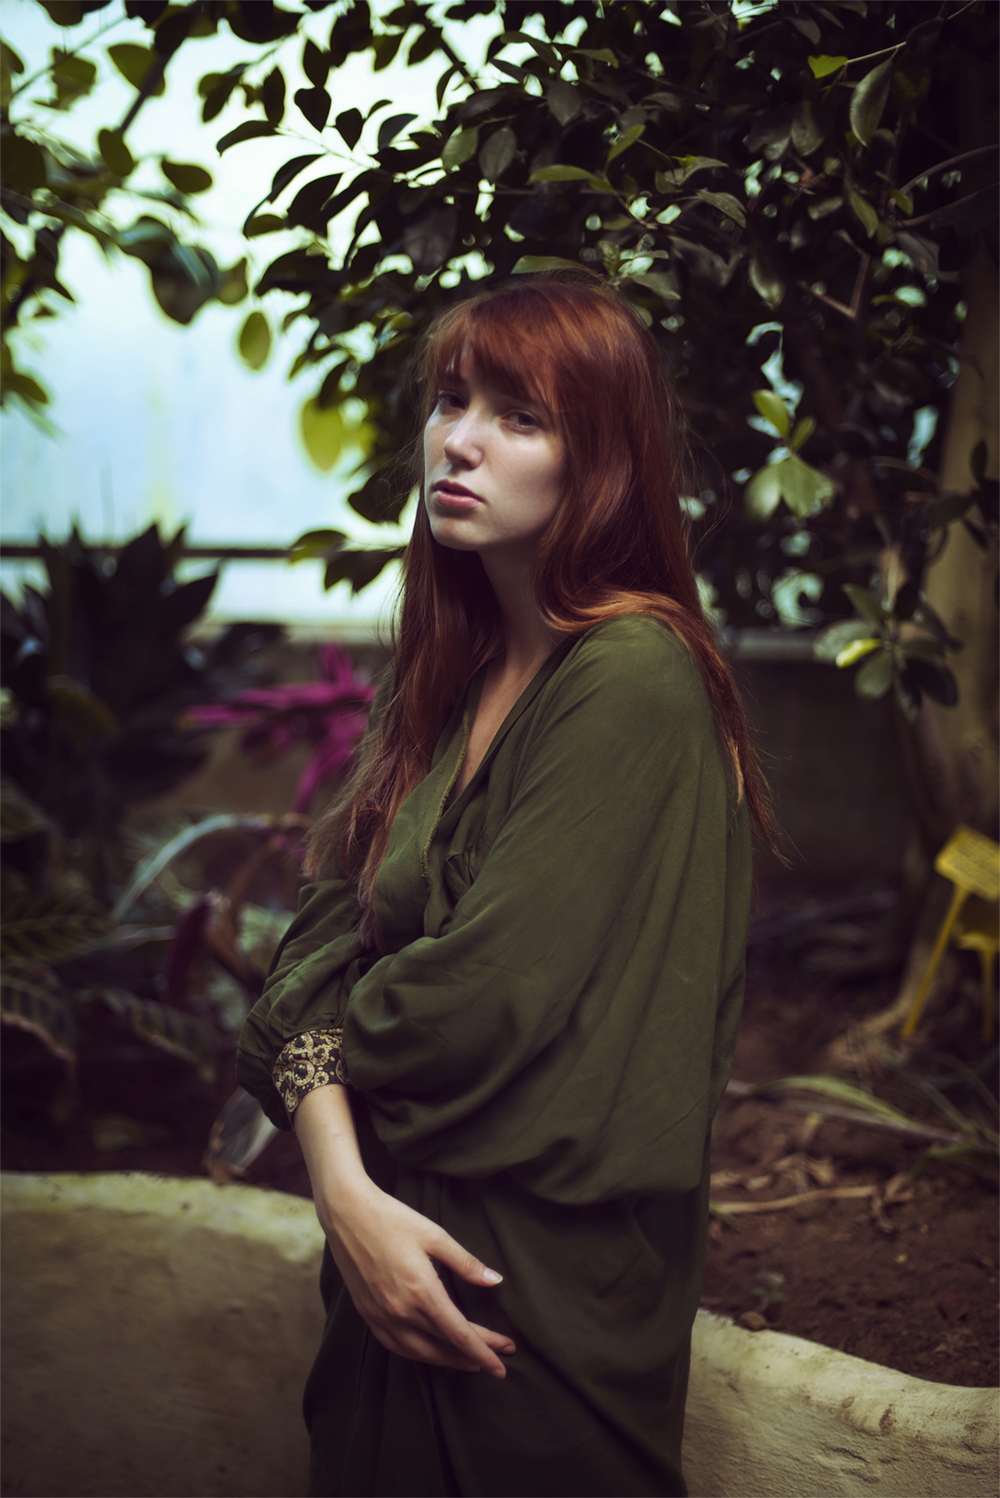 Redhead model portrait with plants